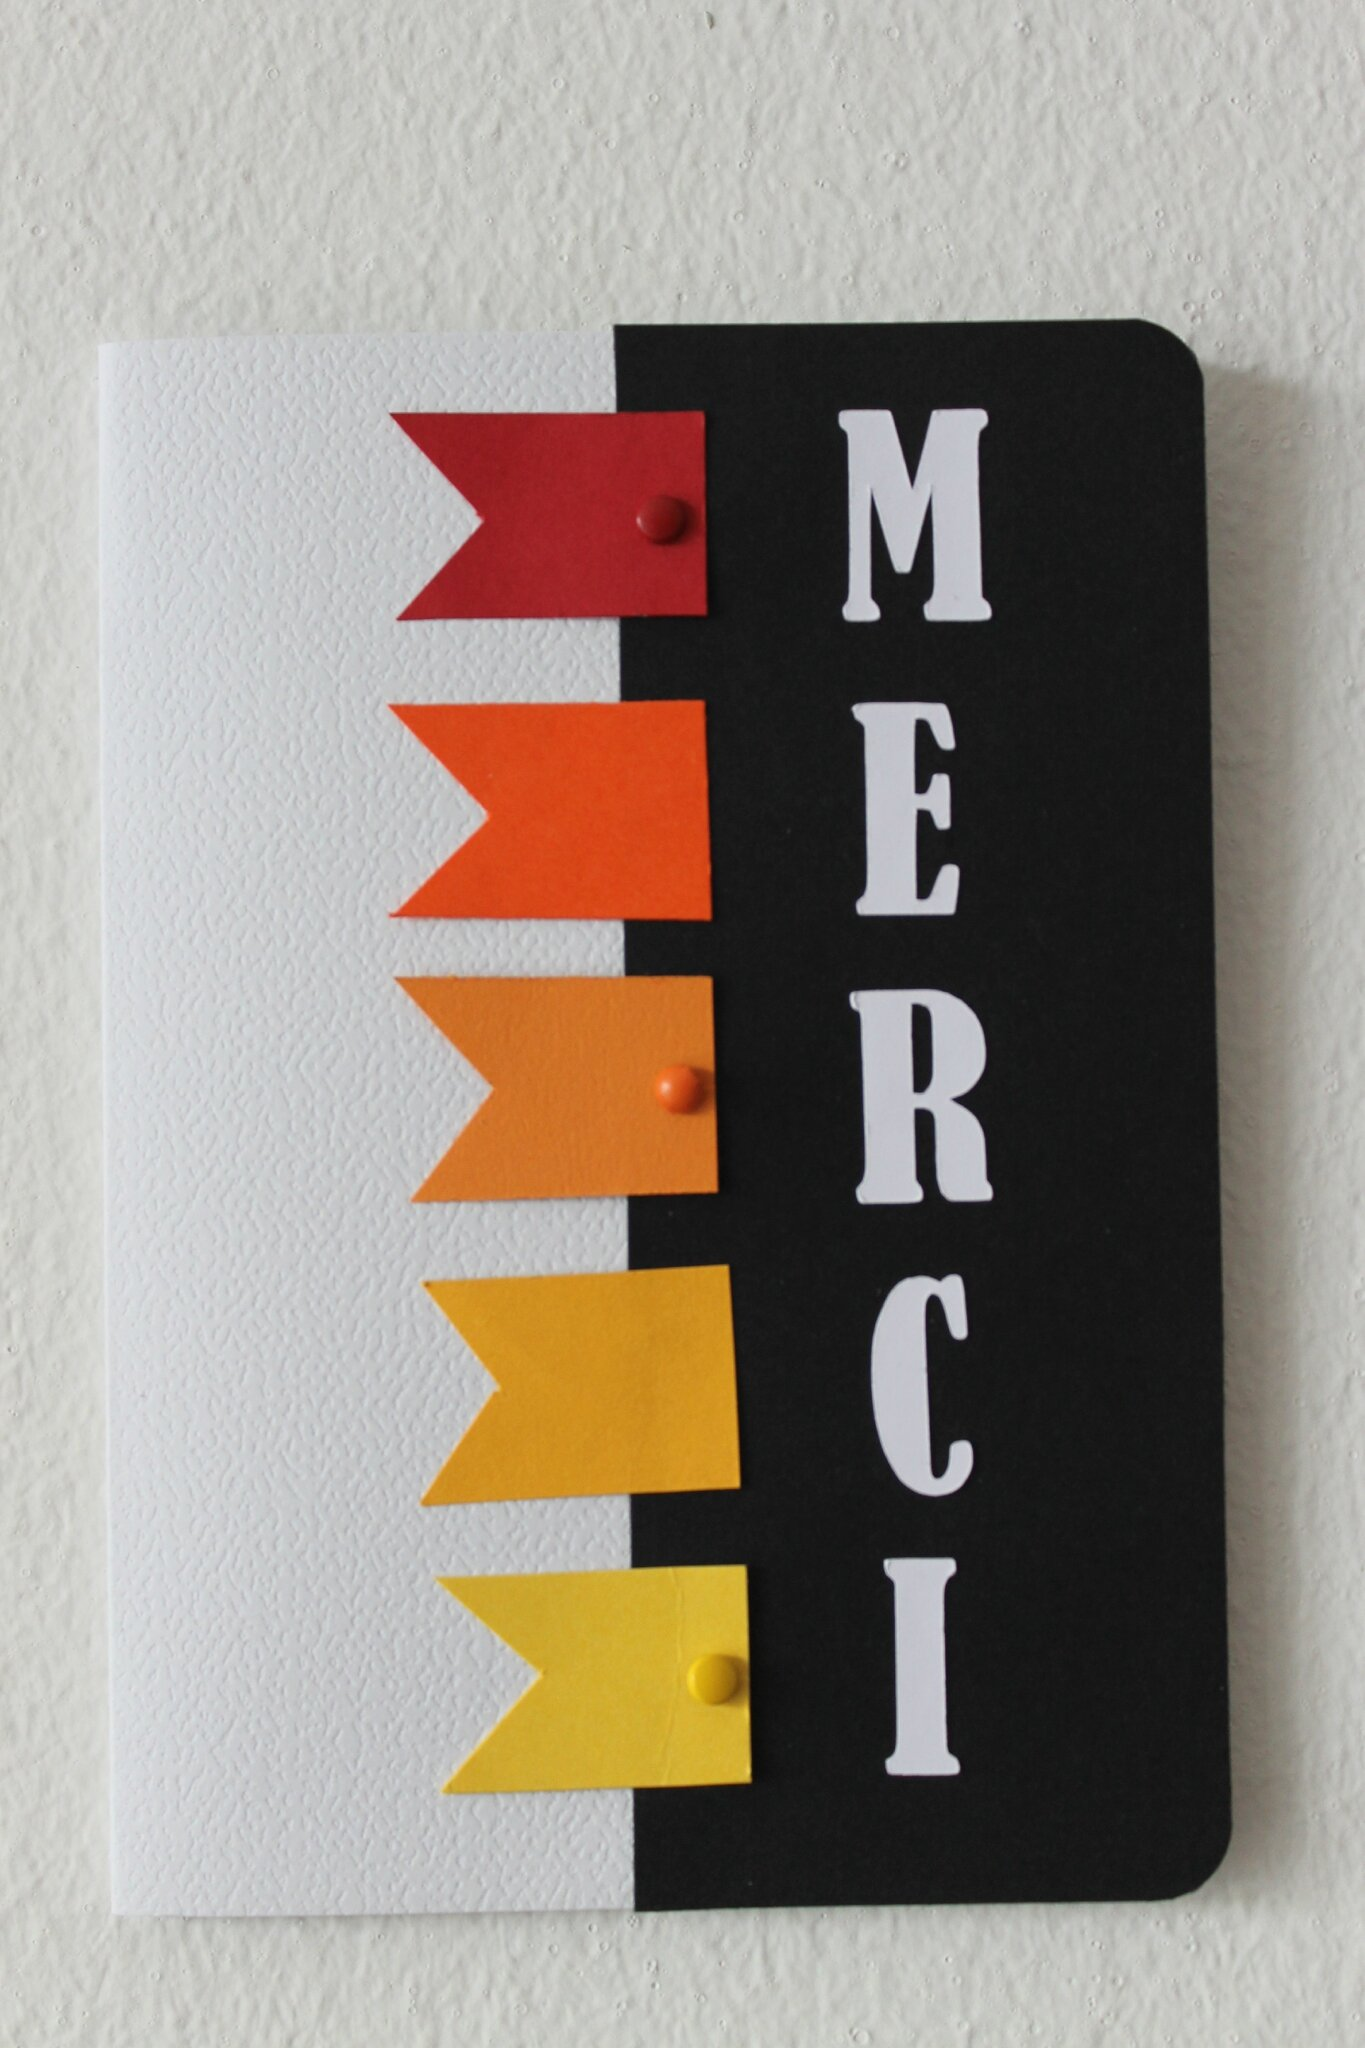 carte merci 2014